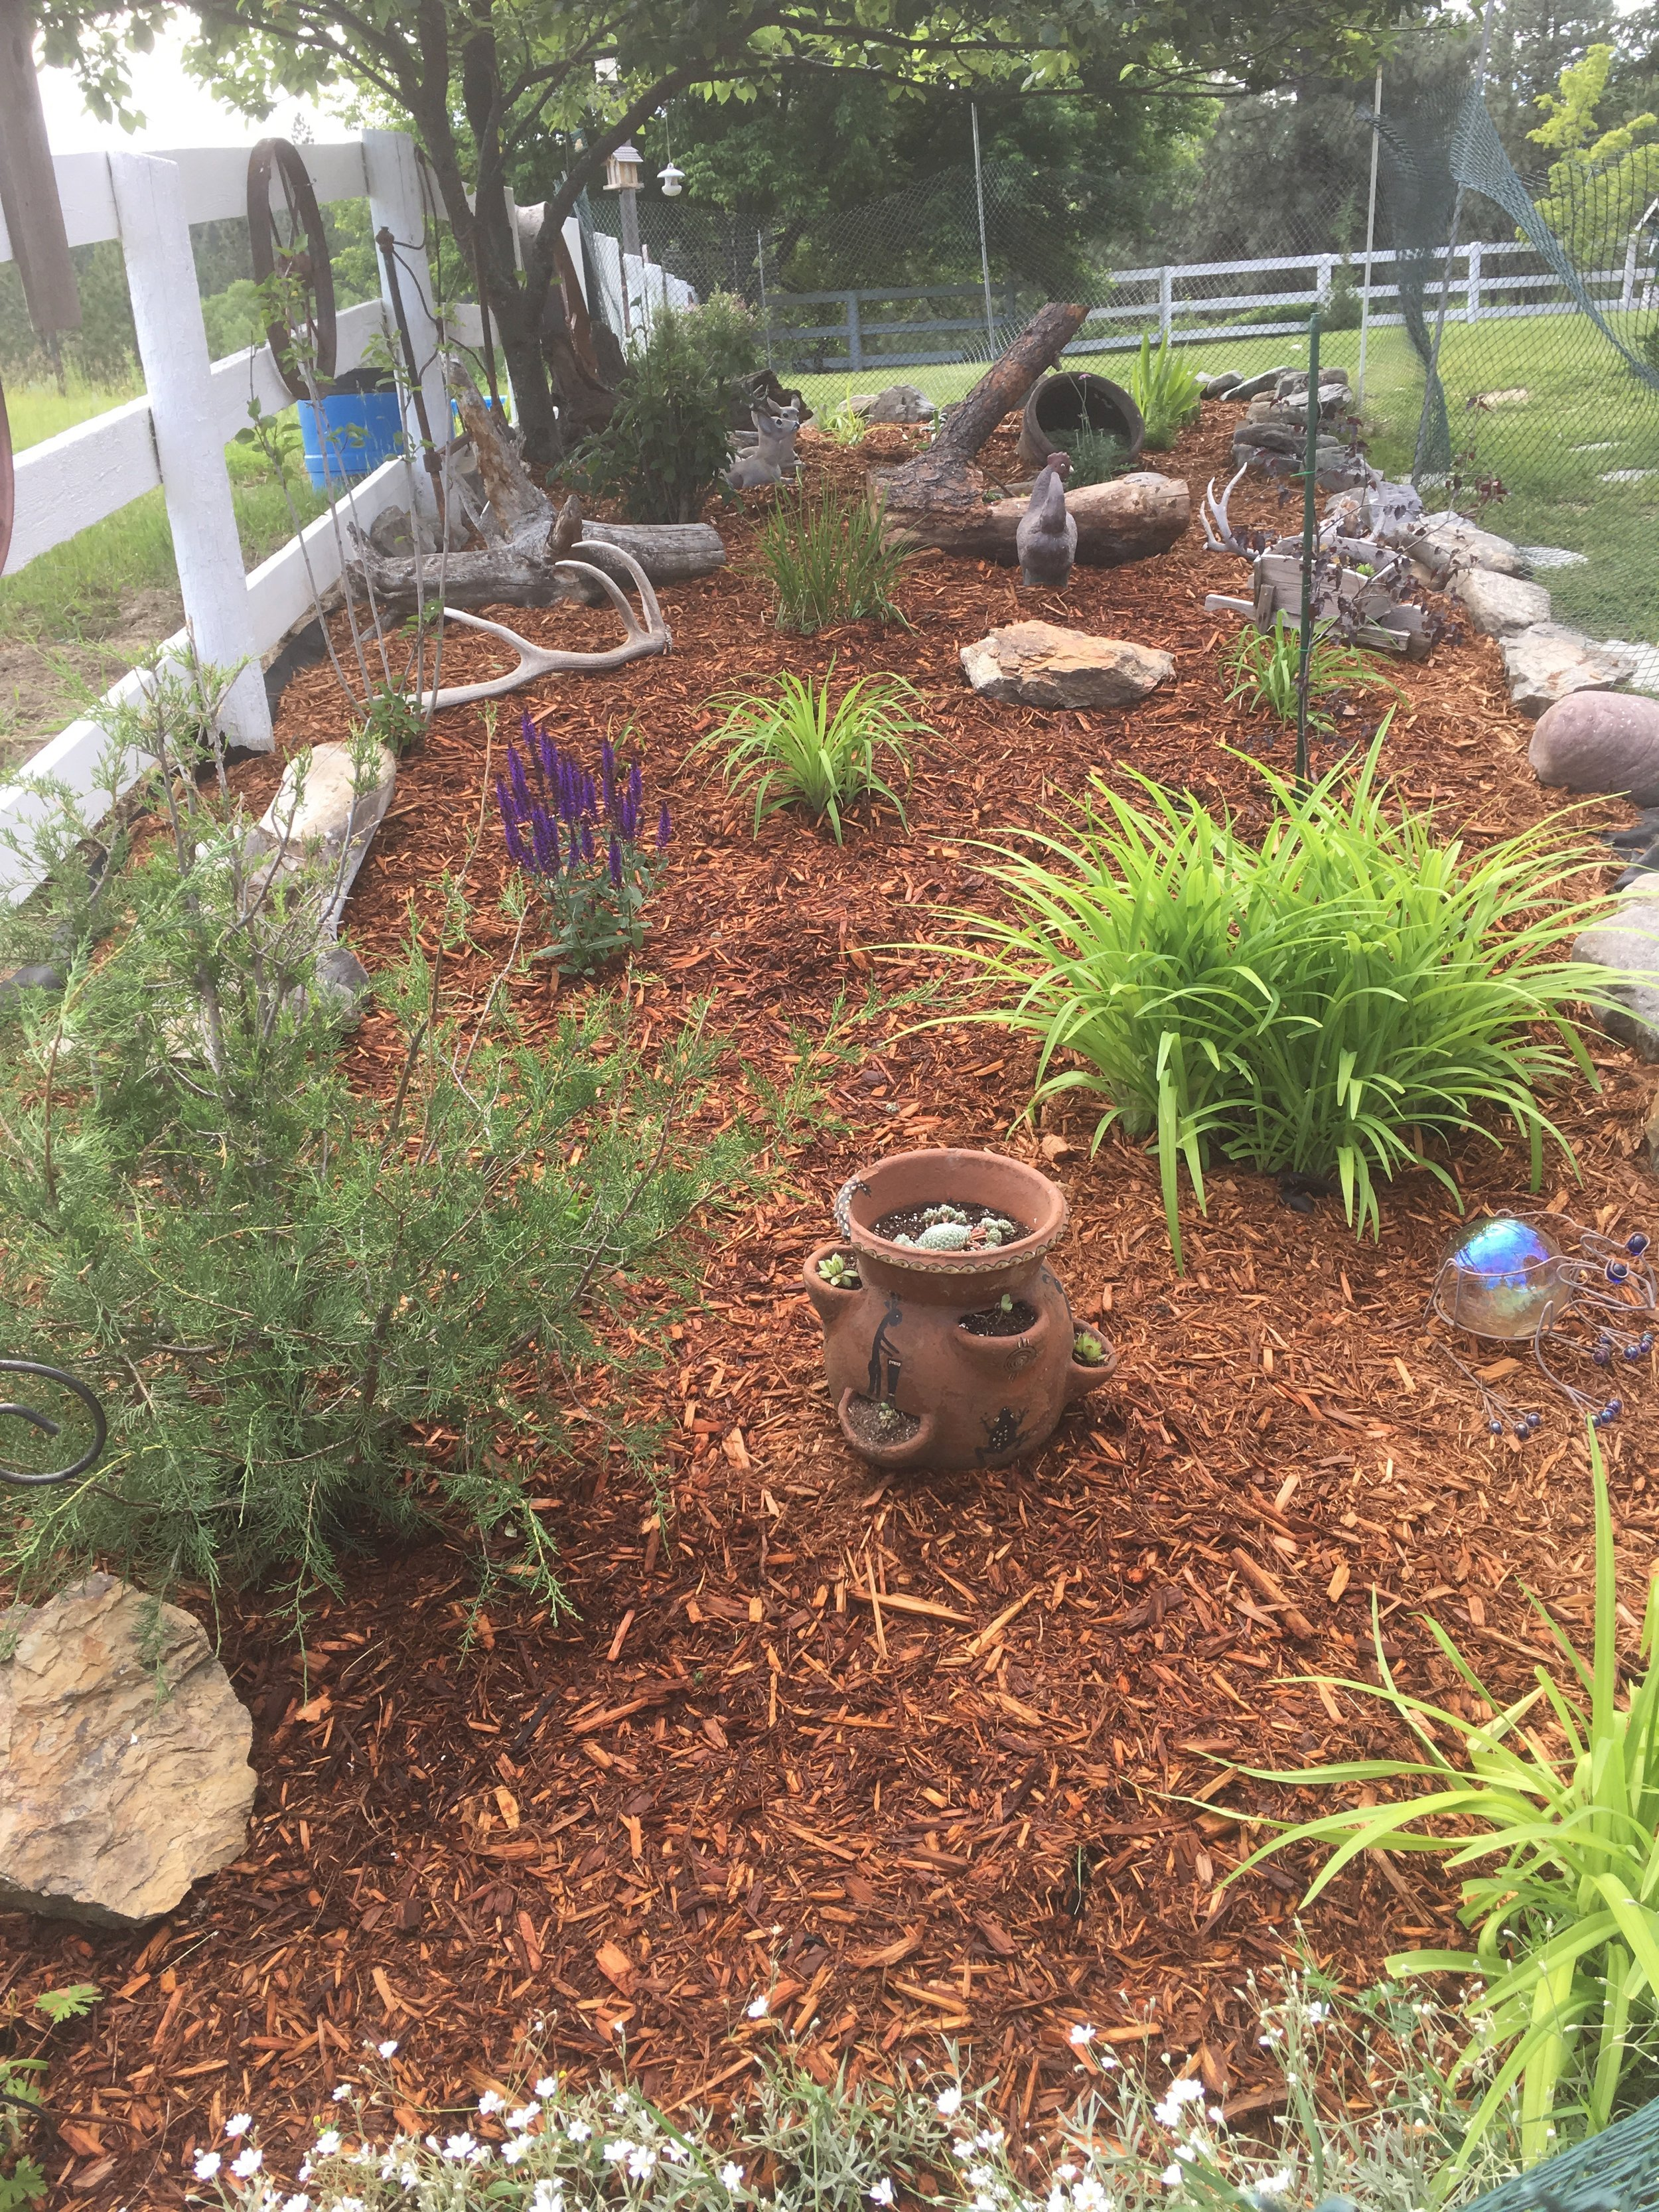 Need Garden Advice? - Don't know where to begin a project? Wouldn't it be handy to just to ask all your questions to one person? Book a consultation to get you started on the right foot and give you the answers you need. This service is often used by people with new yards who want to accomplish their dreams in the best order. For only $75.00 for the first hour, a yard consultation will get you growing in the right direction without learning the hard way.